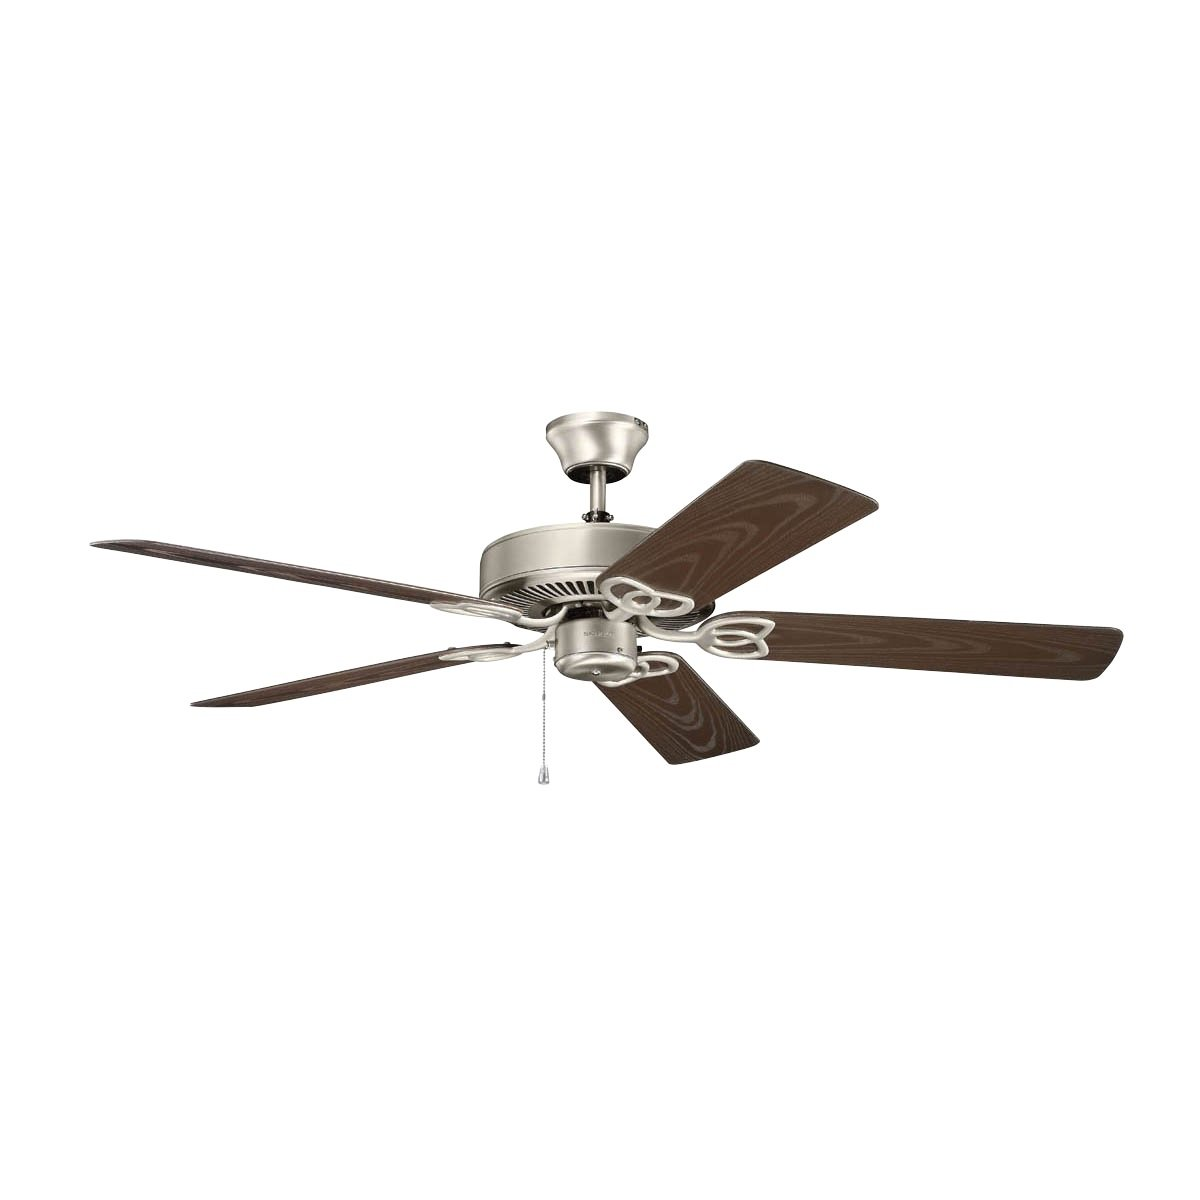 Kichler Lighting 401NI Basics Patio 52IN 5-Blade Damp-Rated Ceiling Fan, Brushed Nickel Finish with Coffee Mocha ABS Blades